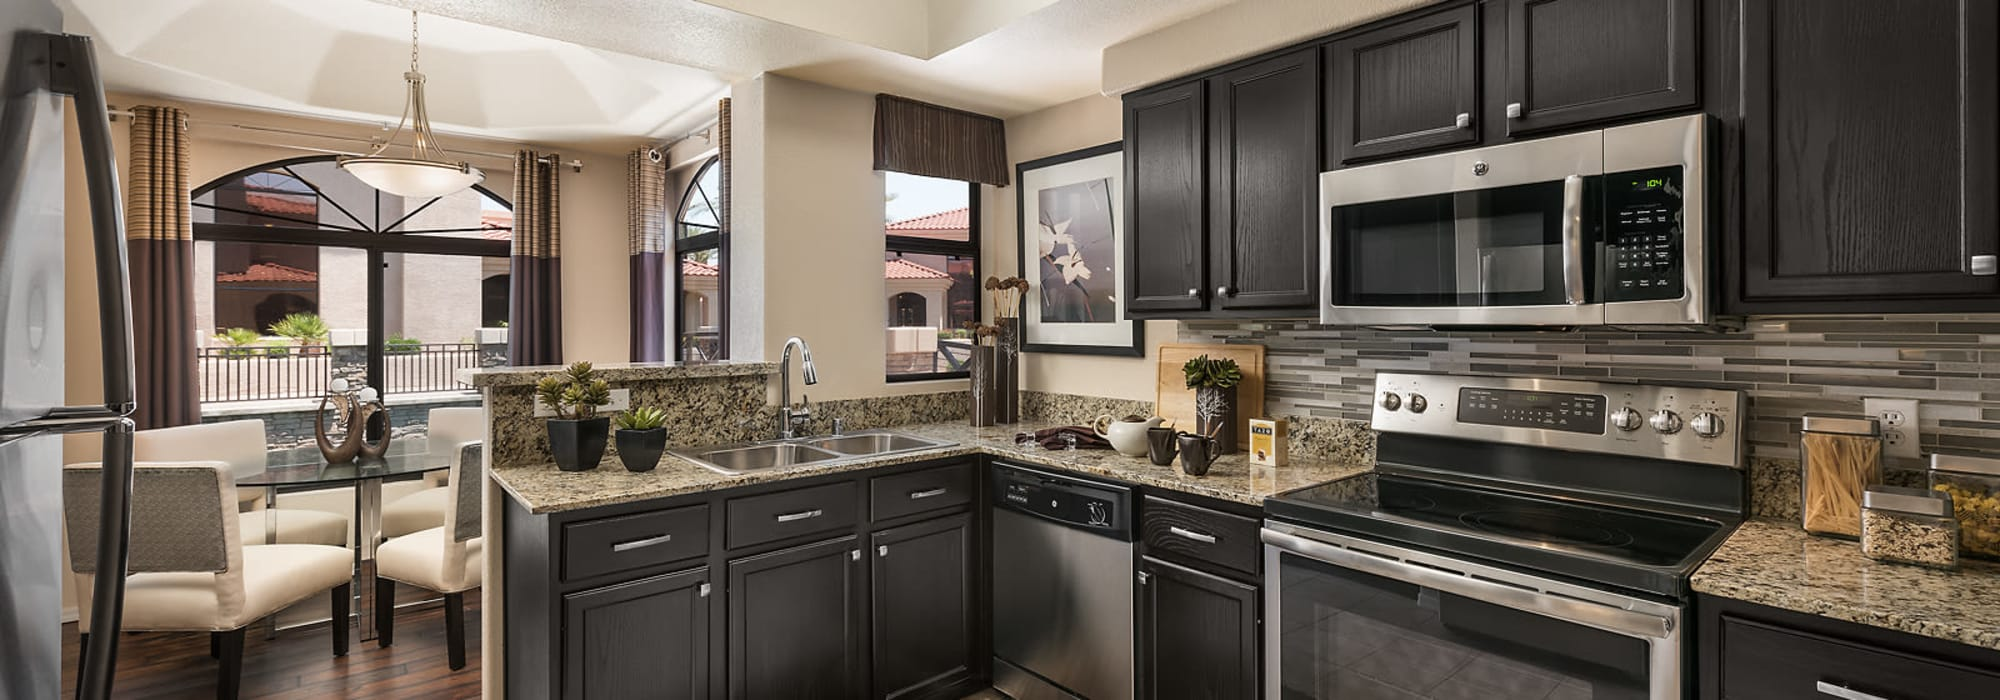 Beautiful upgraded kitchen interiors at San Lagos in Glendale, Arizona